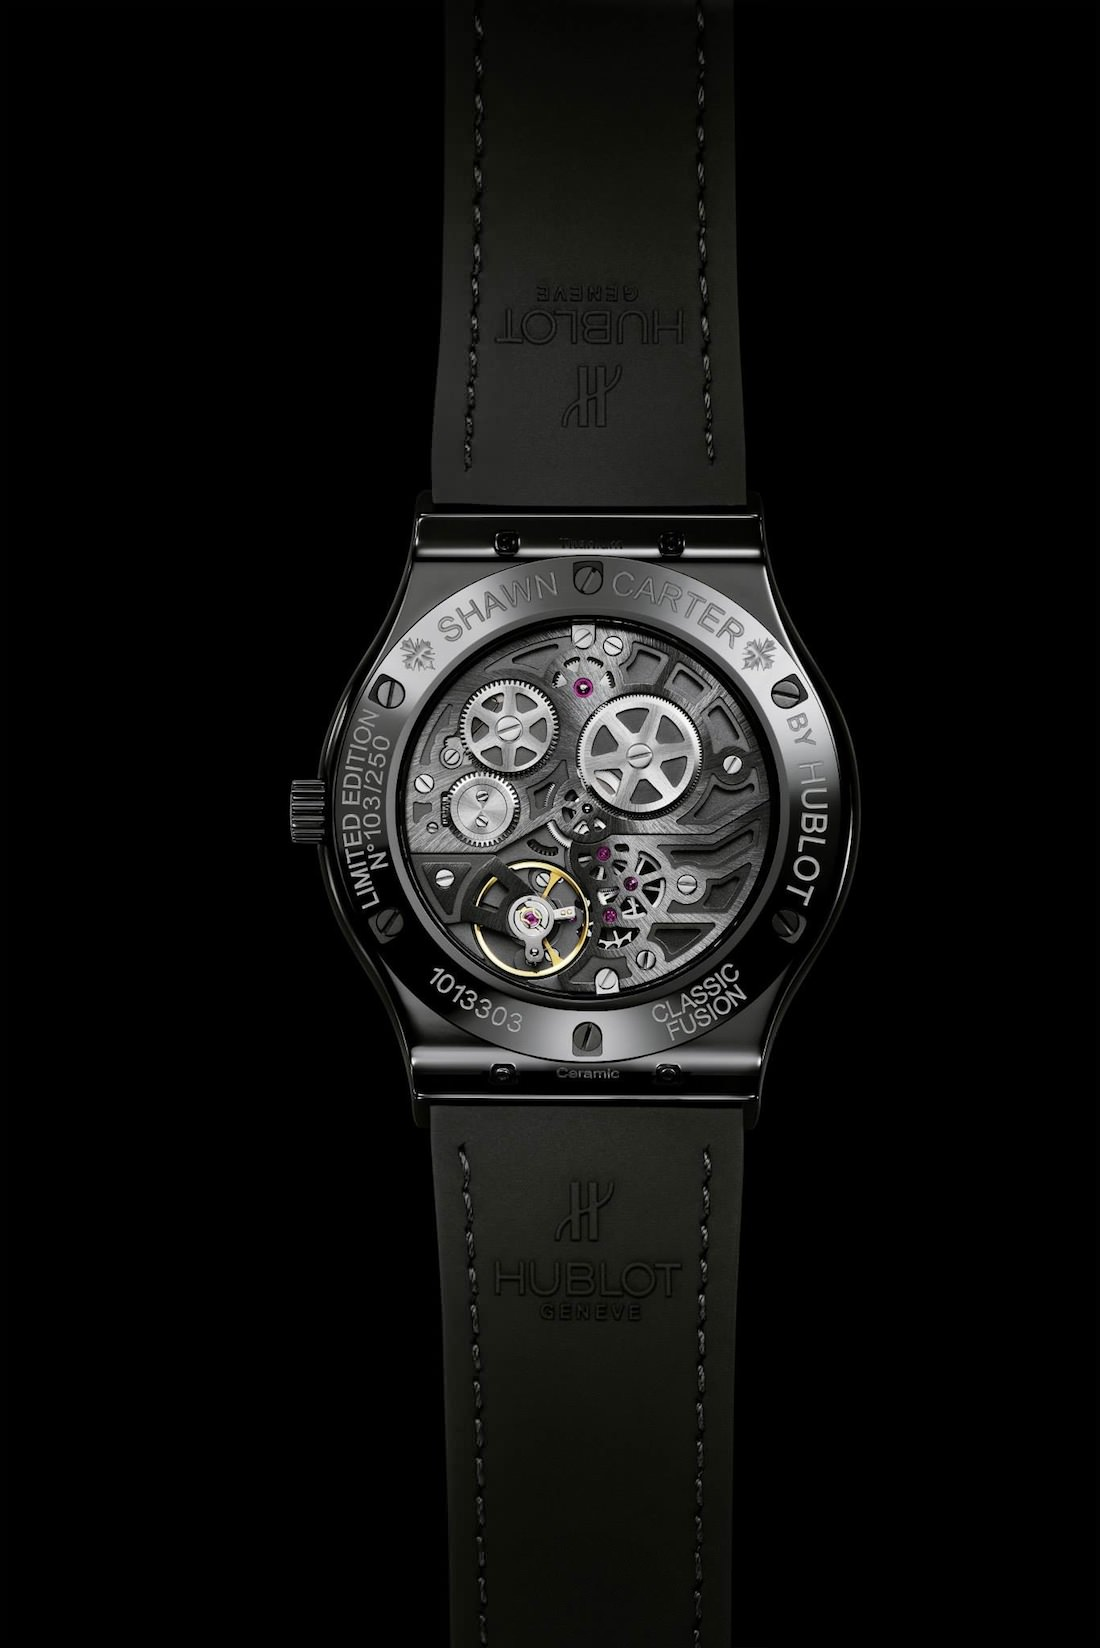 Hublot-Shawn-Carter-jayz-02